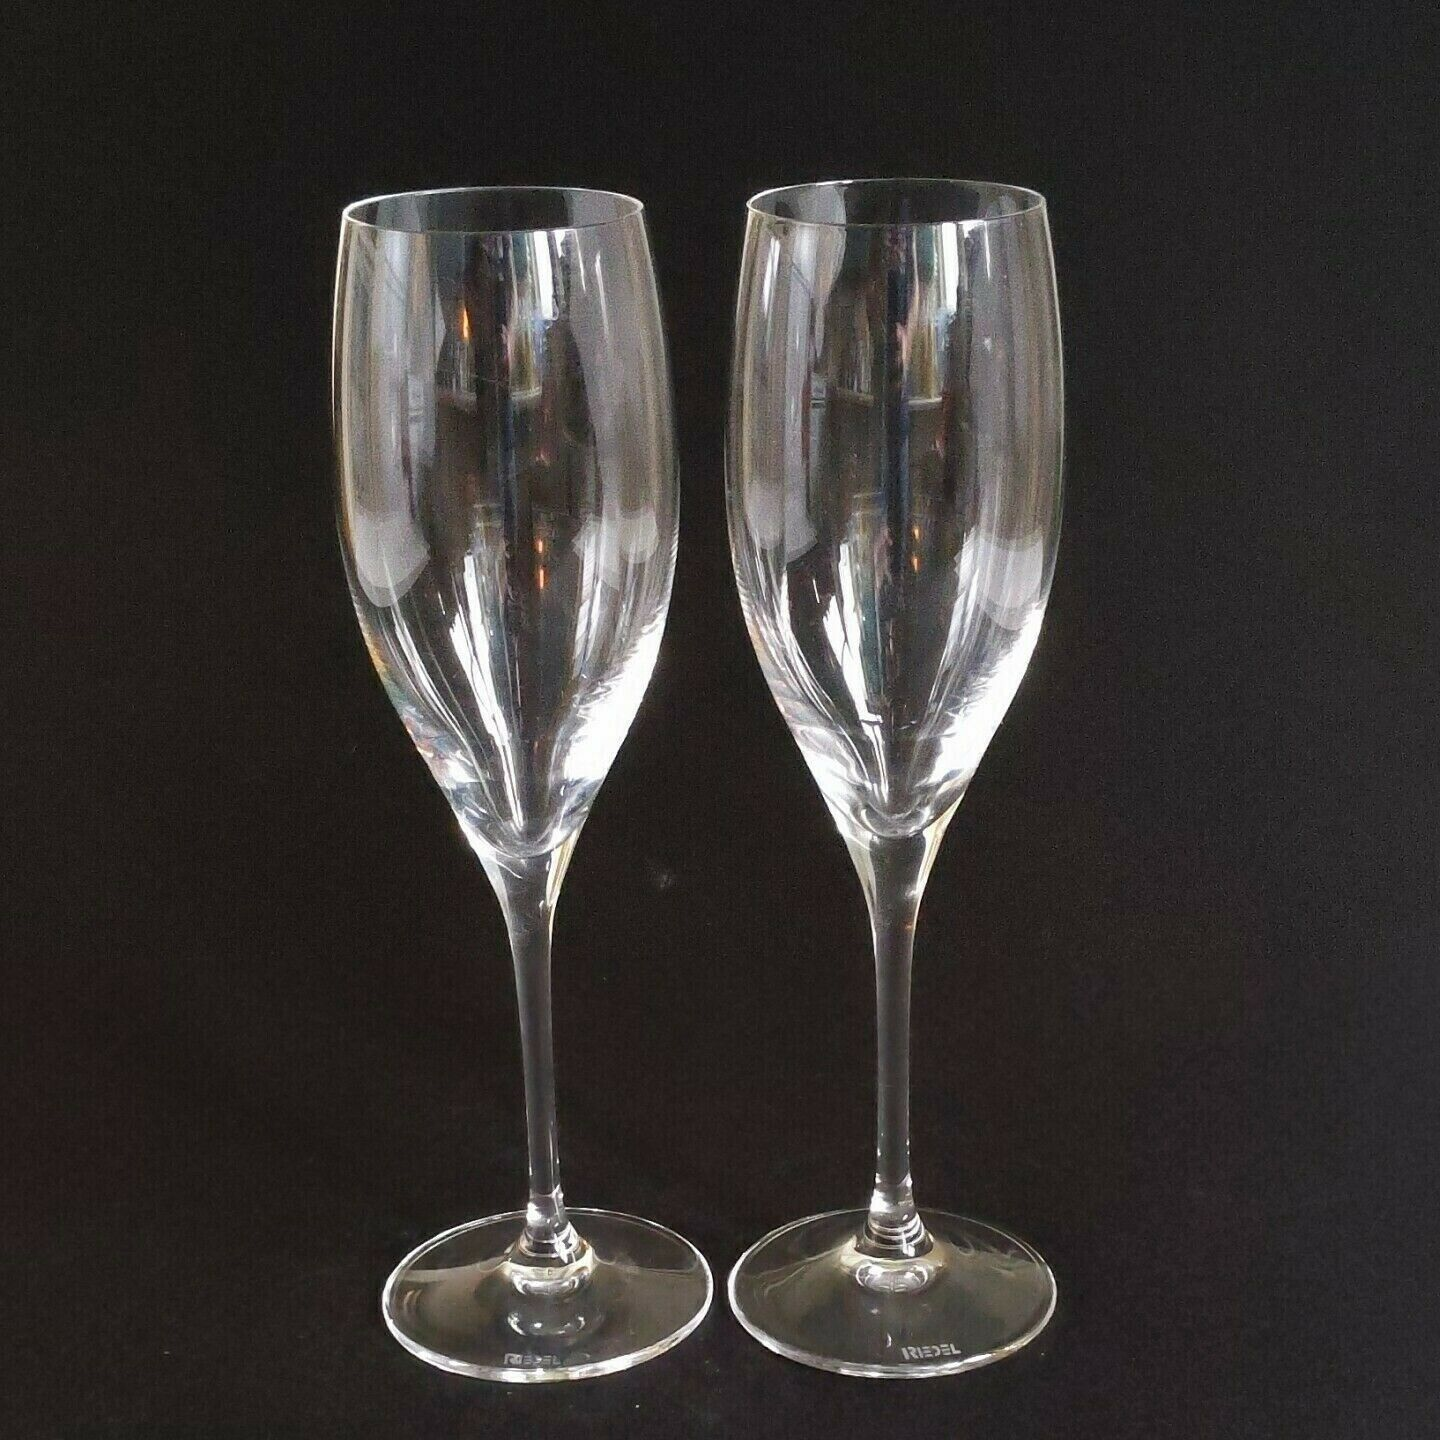 2 (Two) RIEDEL VINUM Lead Free Crystal Fluted Champagne Glass - Signed